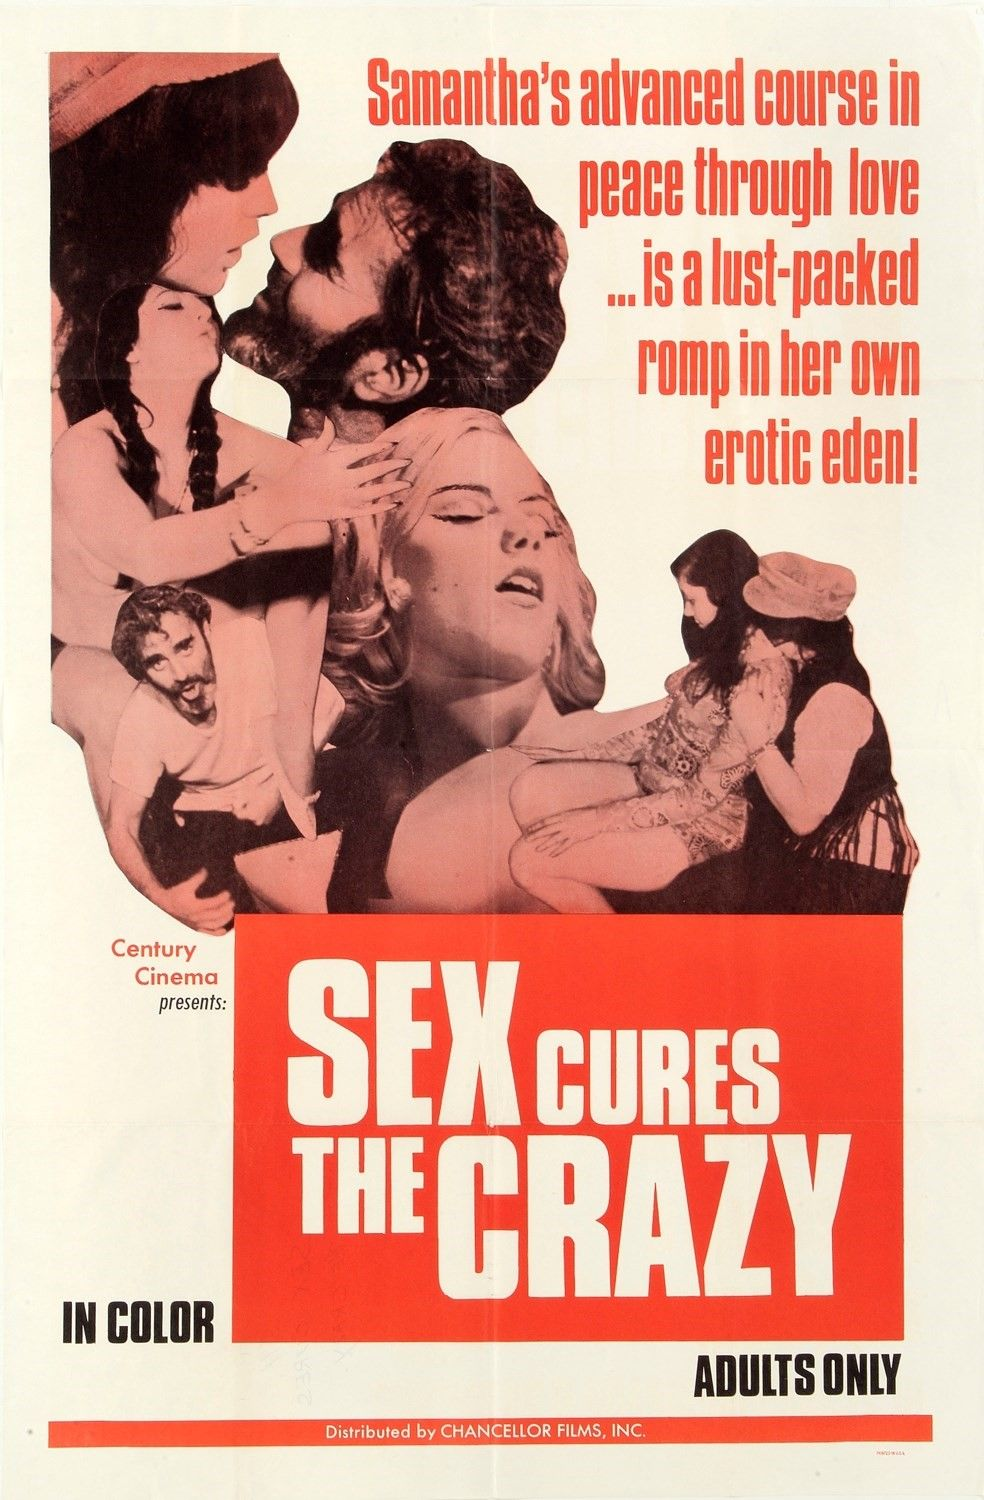 Adult Cinema Porn x-rated adult films of the 60s and 70s   film posters art in